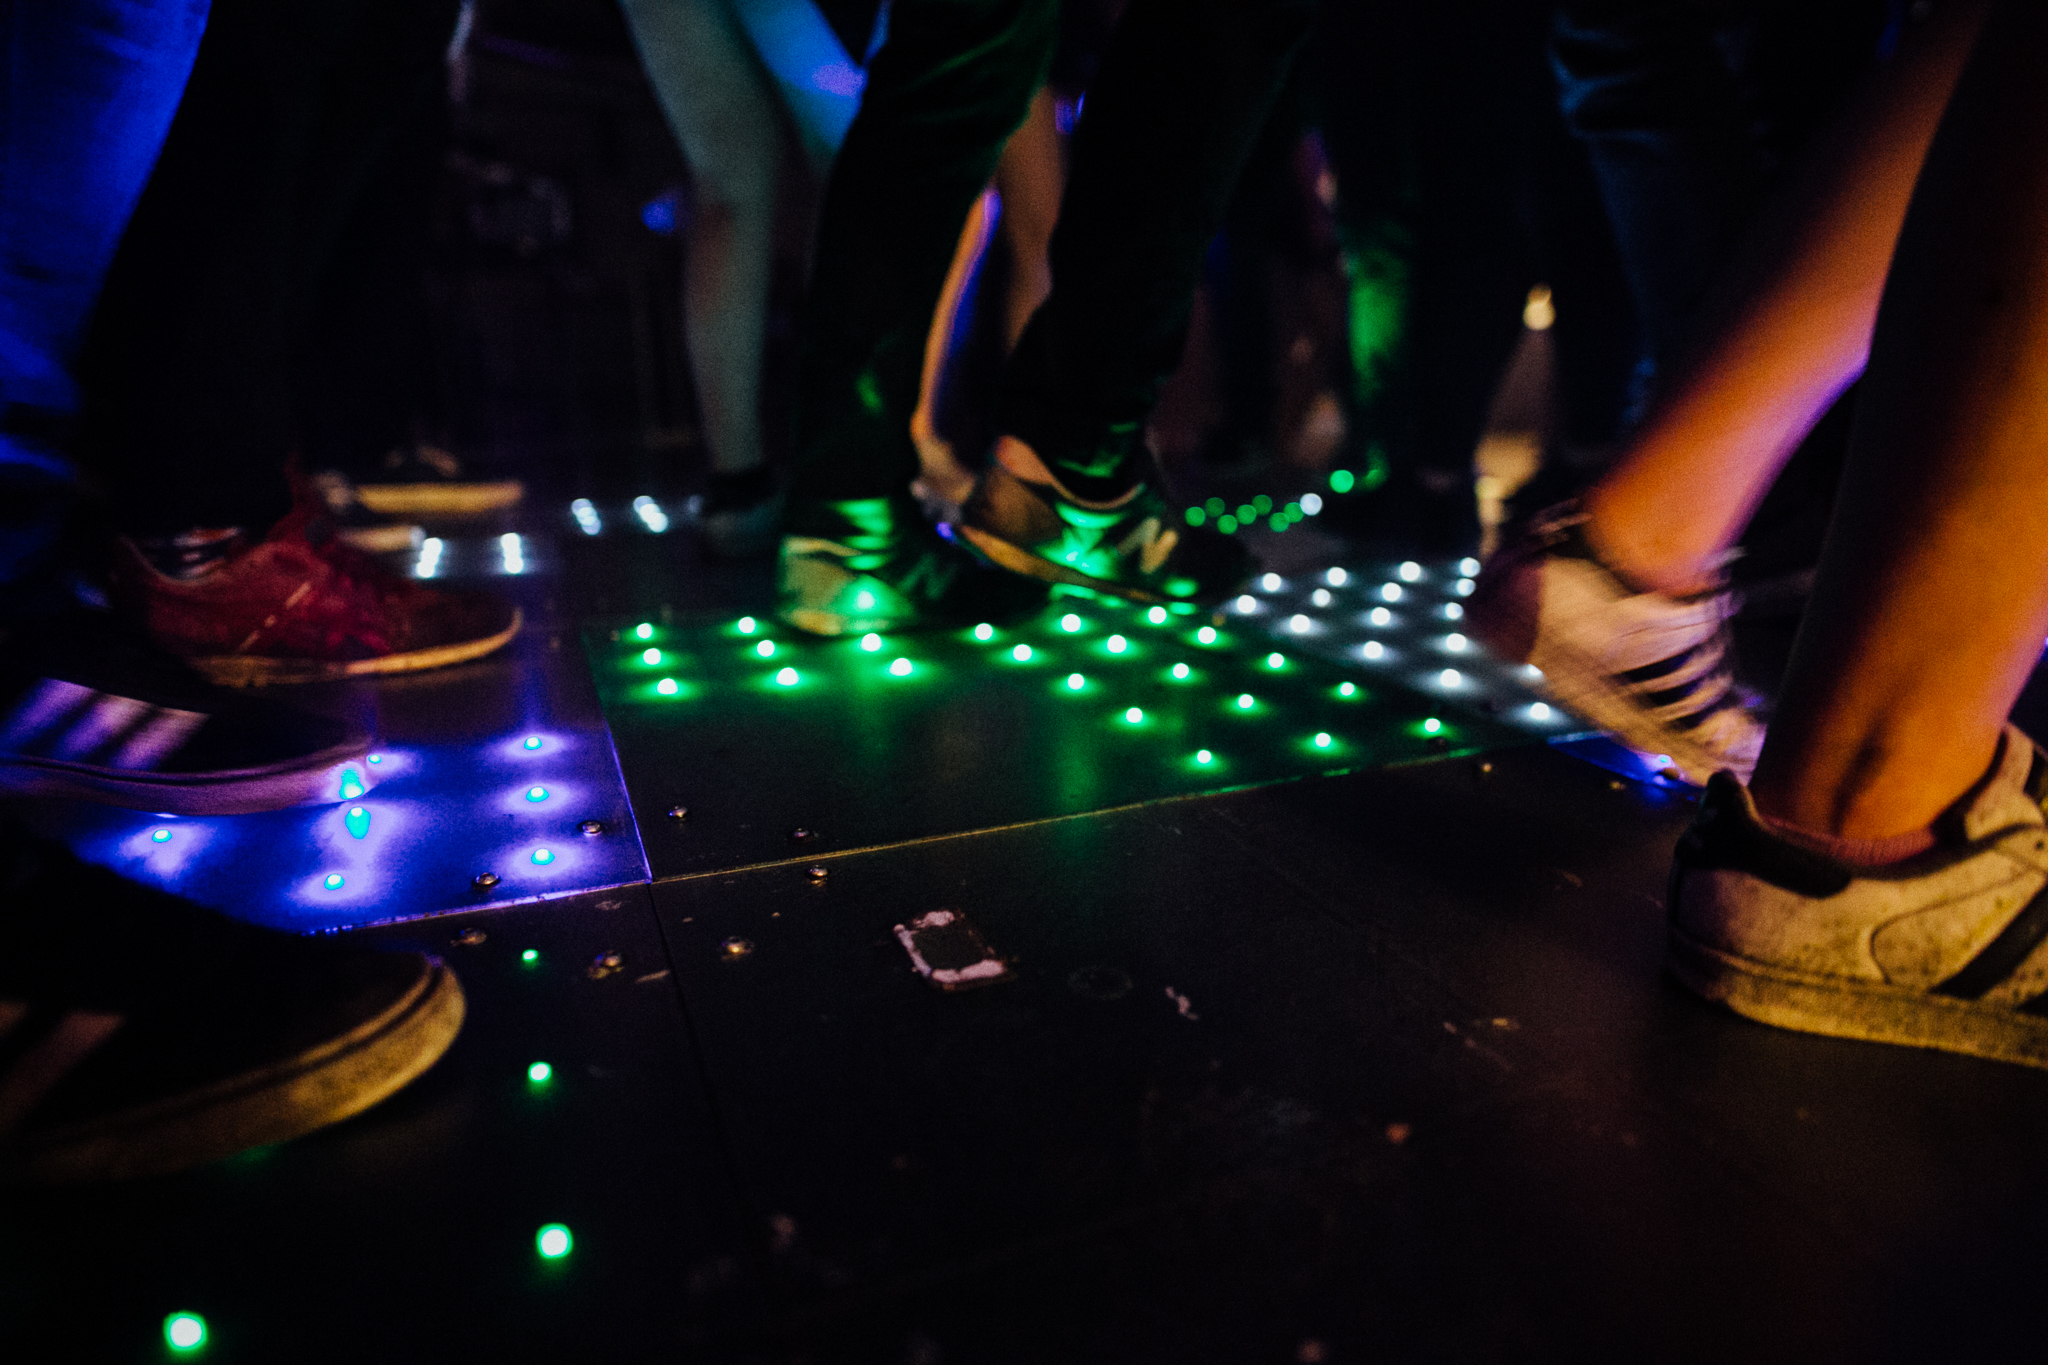 LIGHT UP DANCE-FLOOR